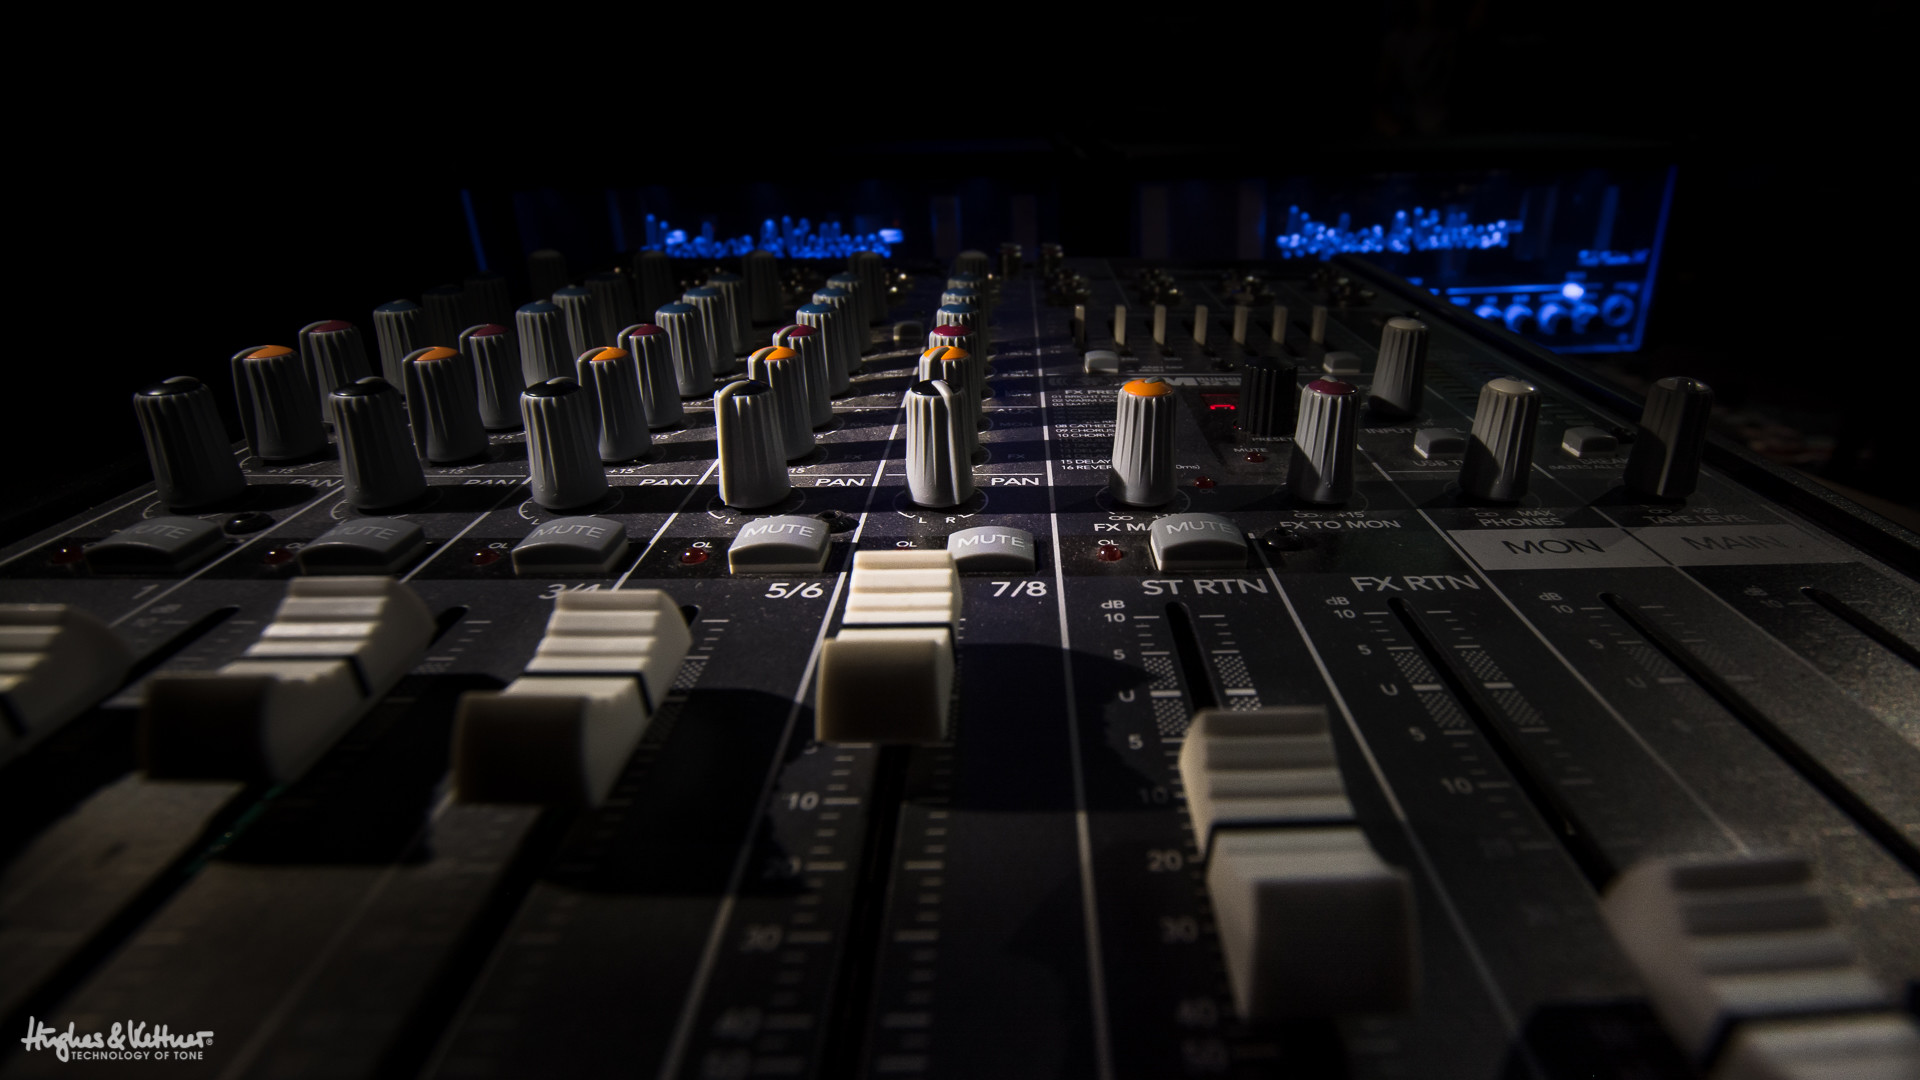 We've come a long way since the swinging 60s. A mixing console like